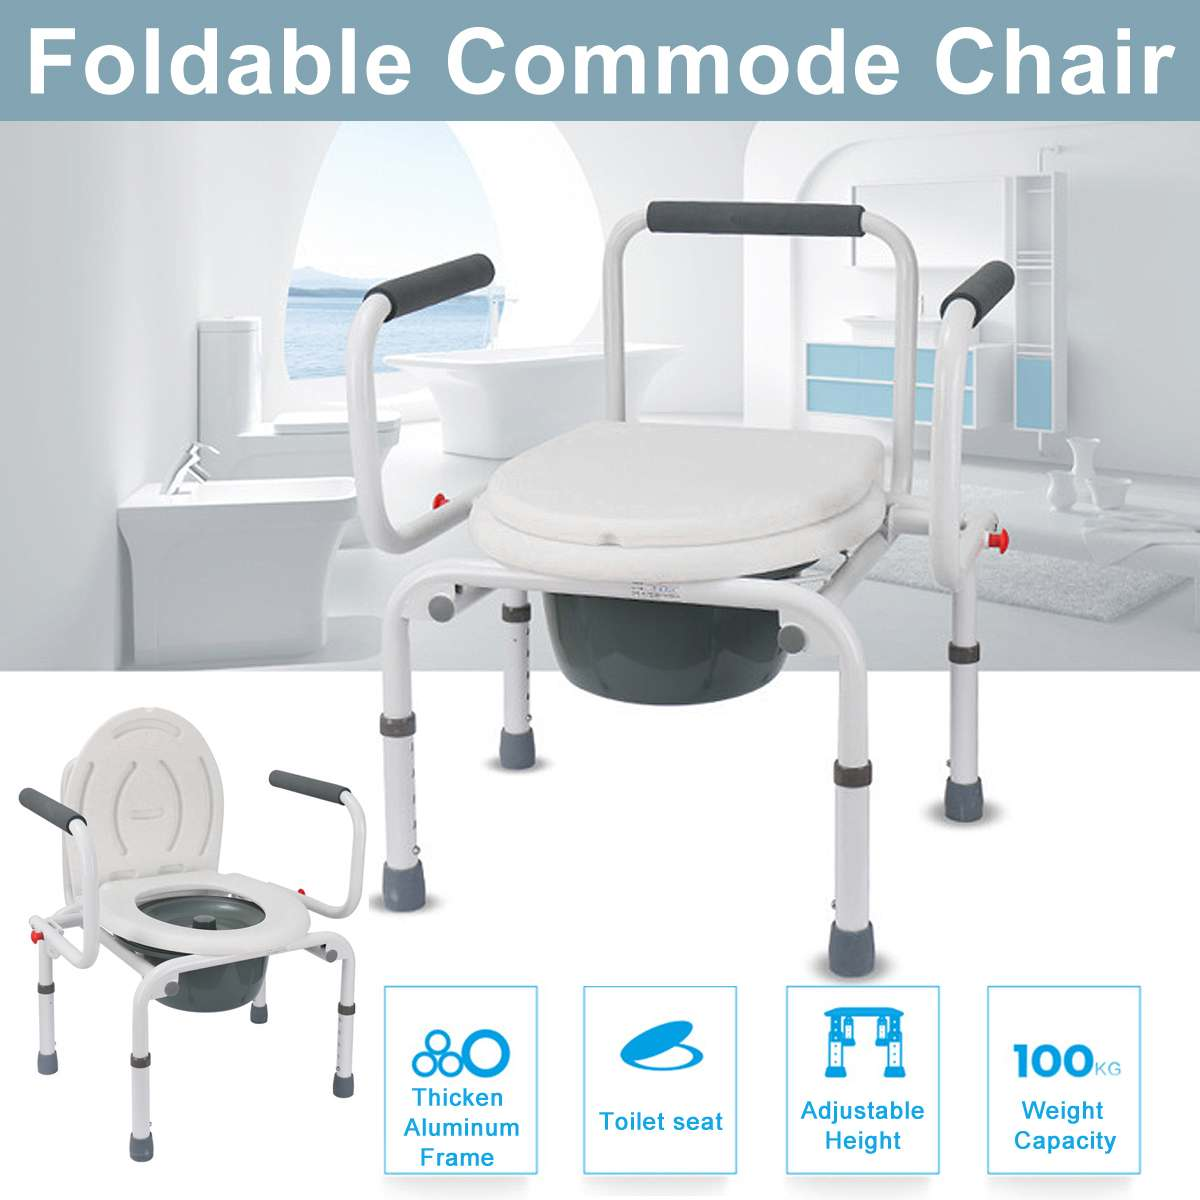 Adjustable Height Commode Wheelchair Bedside Toilet & Shower Seat Bathroom Chair Elder Folding Chair WaterproofAdjustable Height Commode Wheelchair Bedside Toilet & Shower Seat Bathroom Chair Elder Folding Chair Waterproof